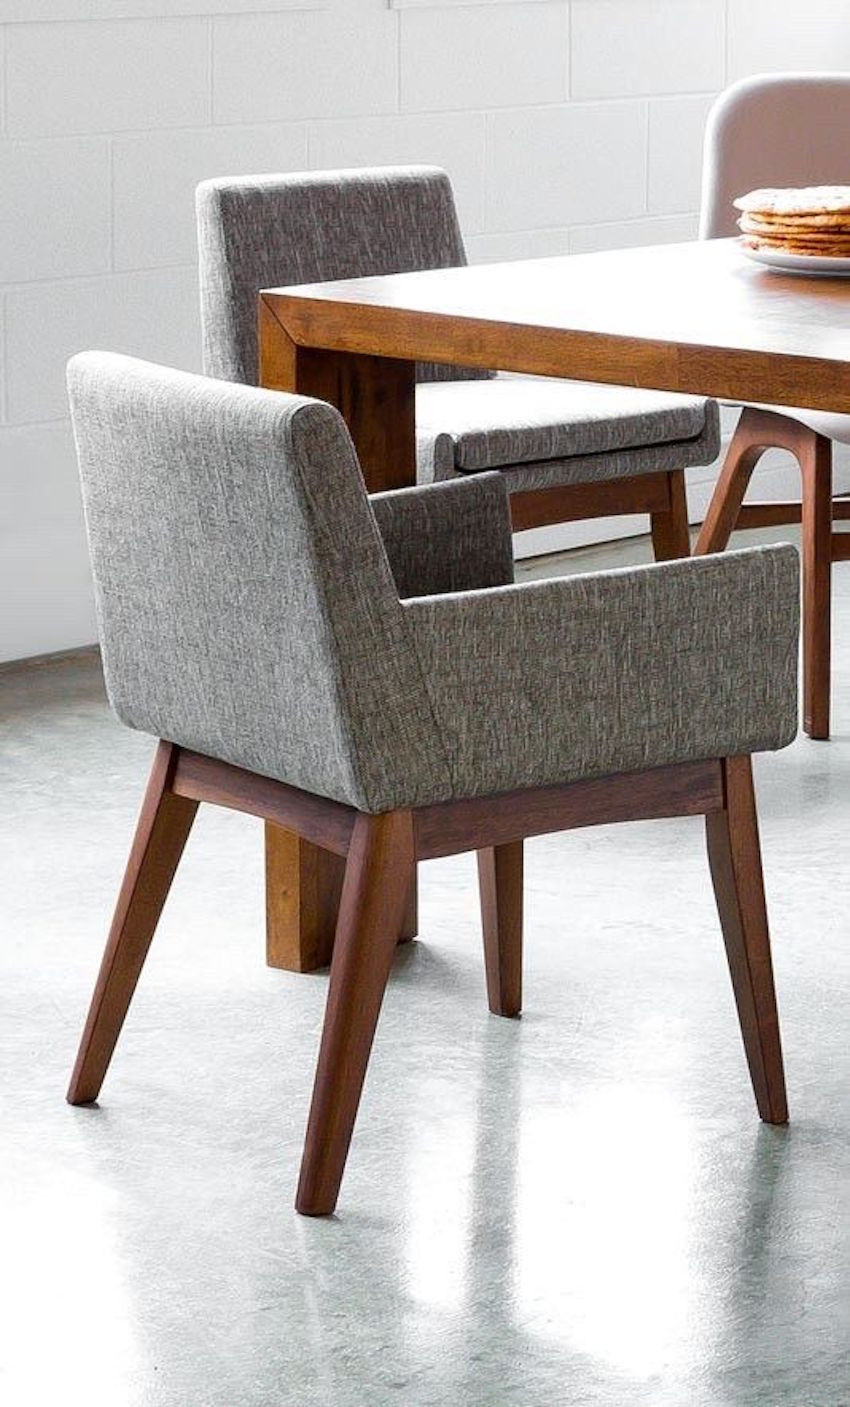 Best ideas about Modern Dining Room Chairs . Save or Pin 10 Astonishing Modern Dining Room Sets Now.